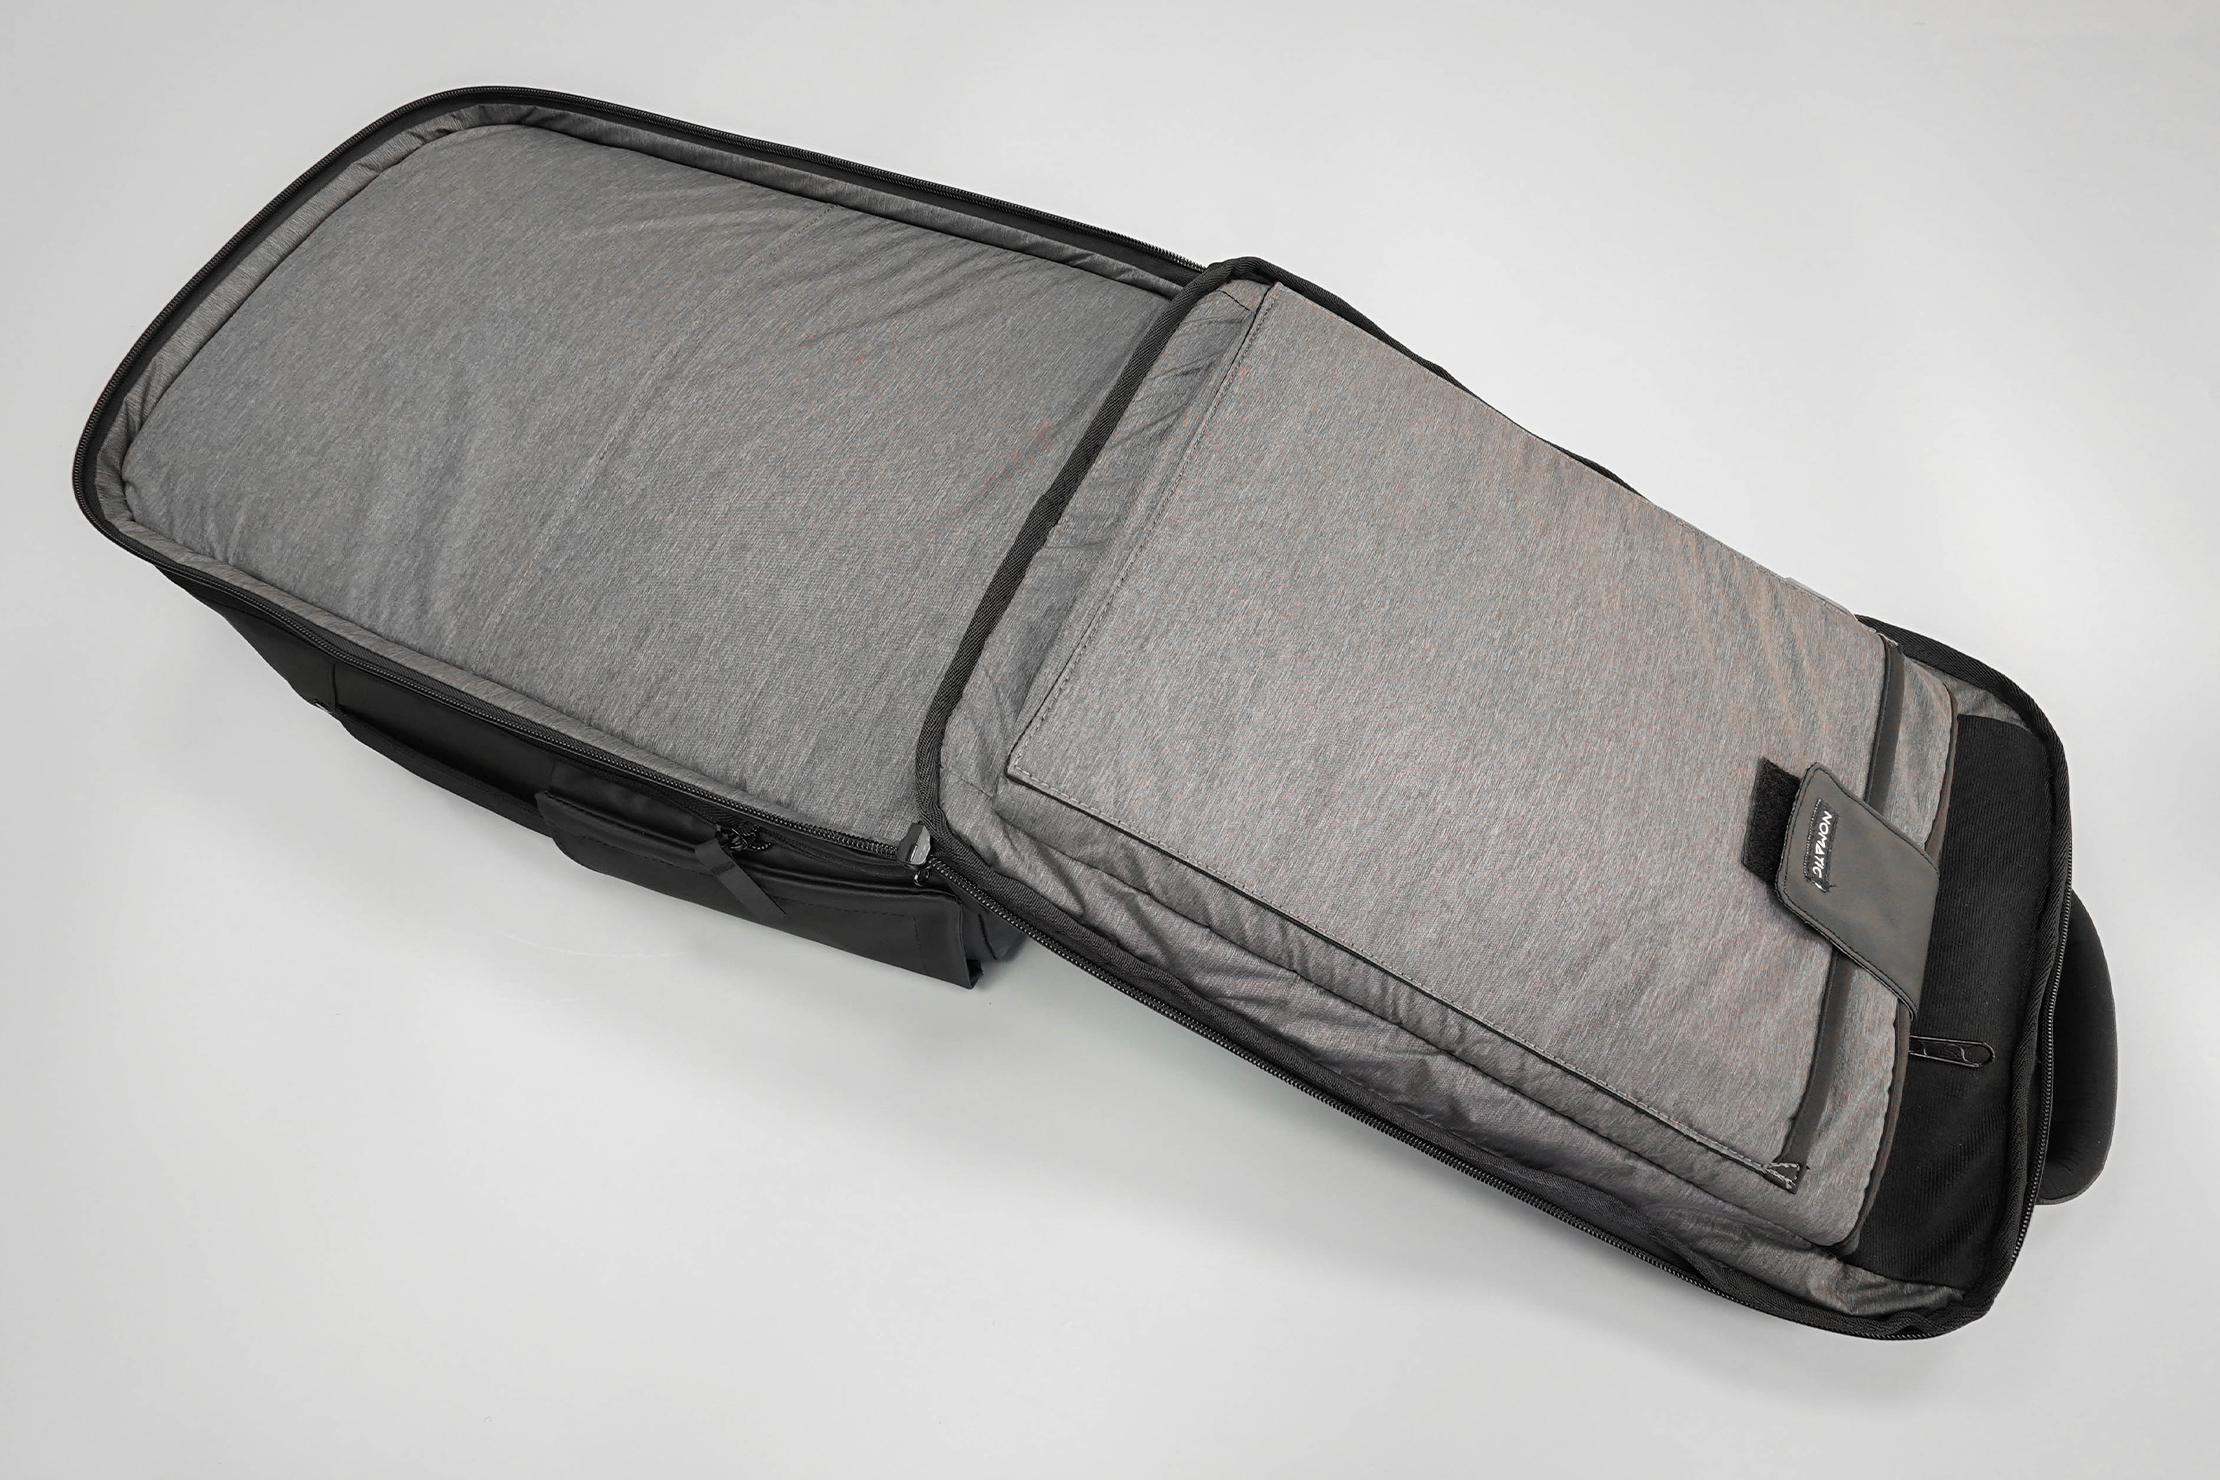 NOMATIC Travel Pack Laptop Compartment Open Clamshell